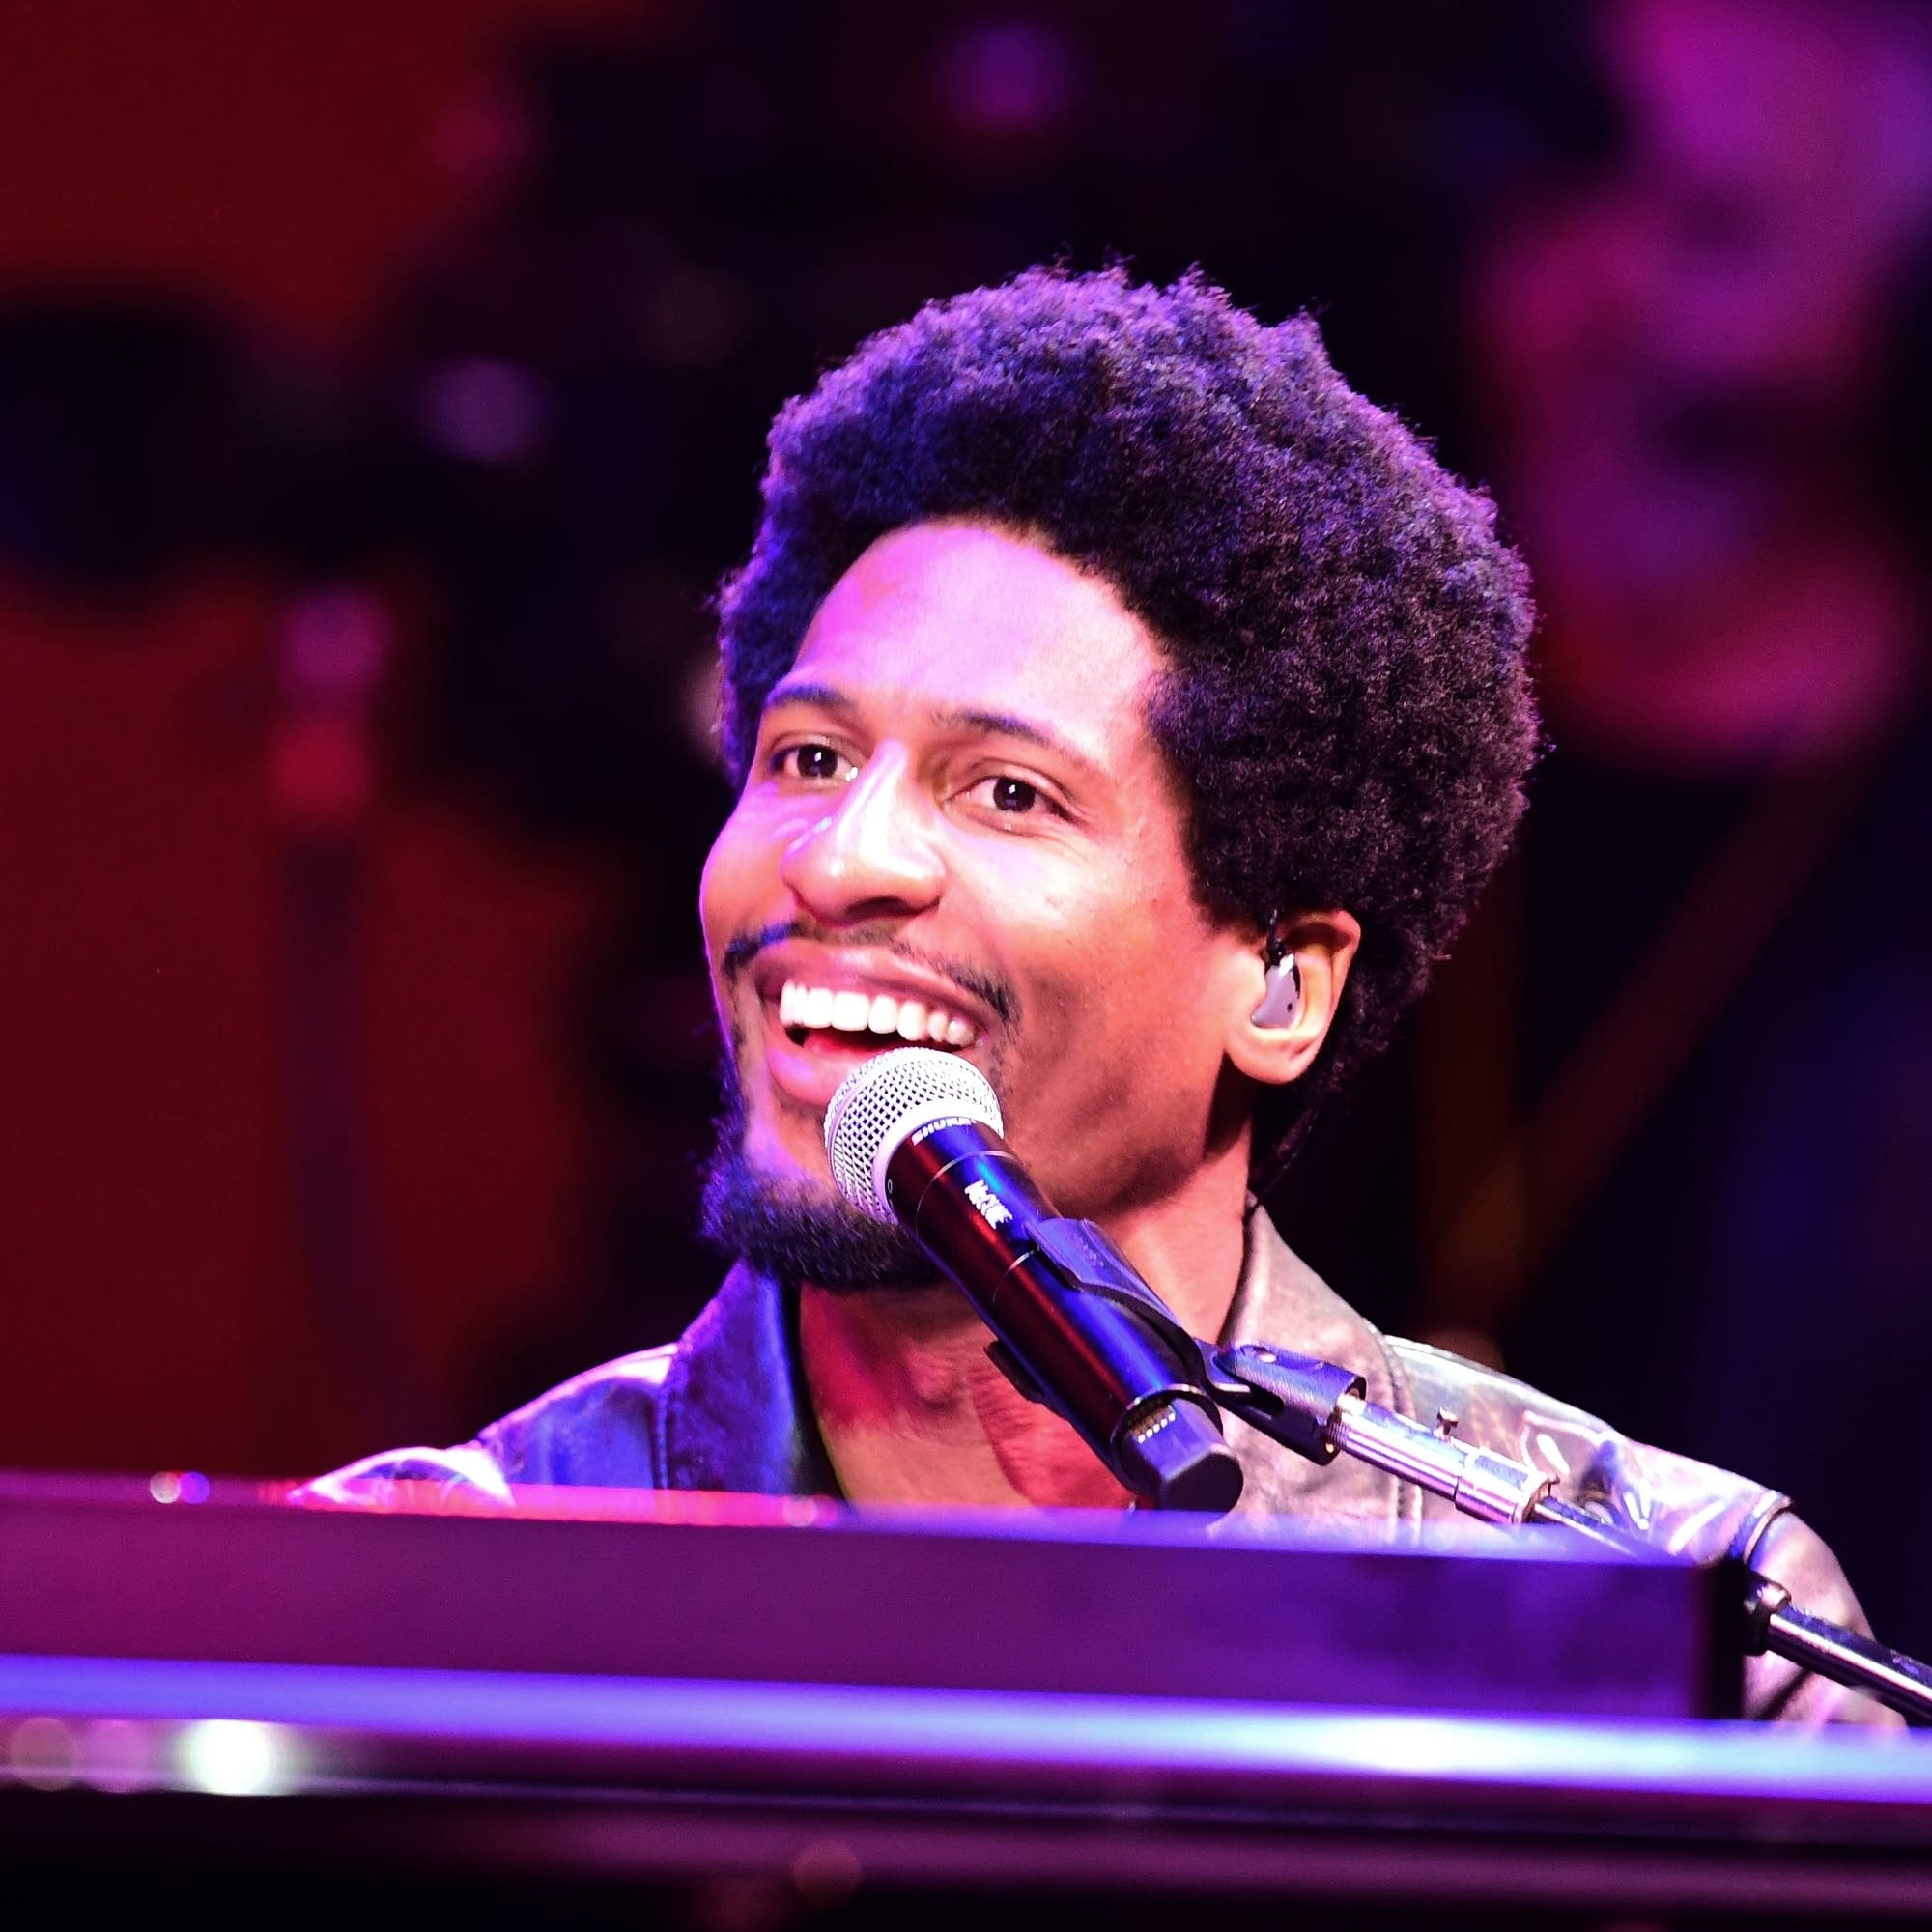 Jon Batiste performs with The Dap-Kings at the Monterey Jazz Festival